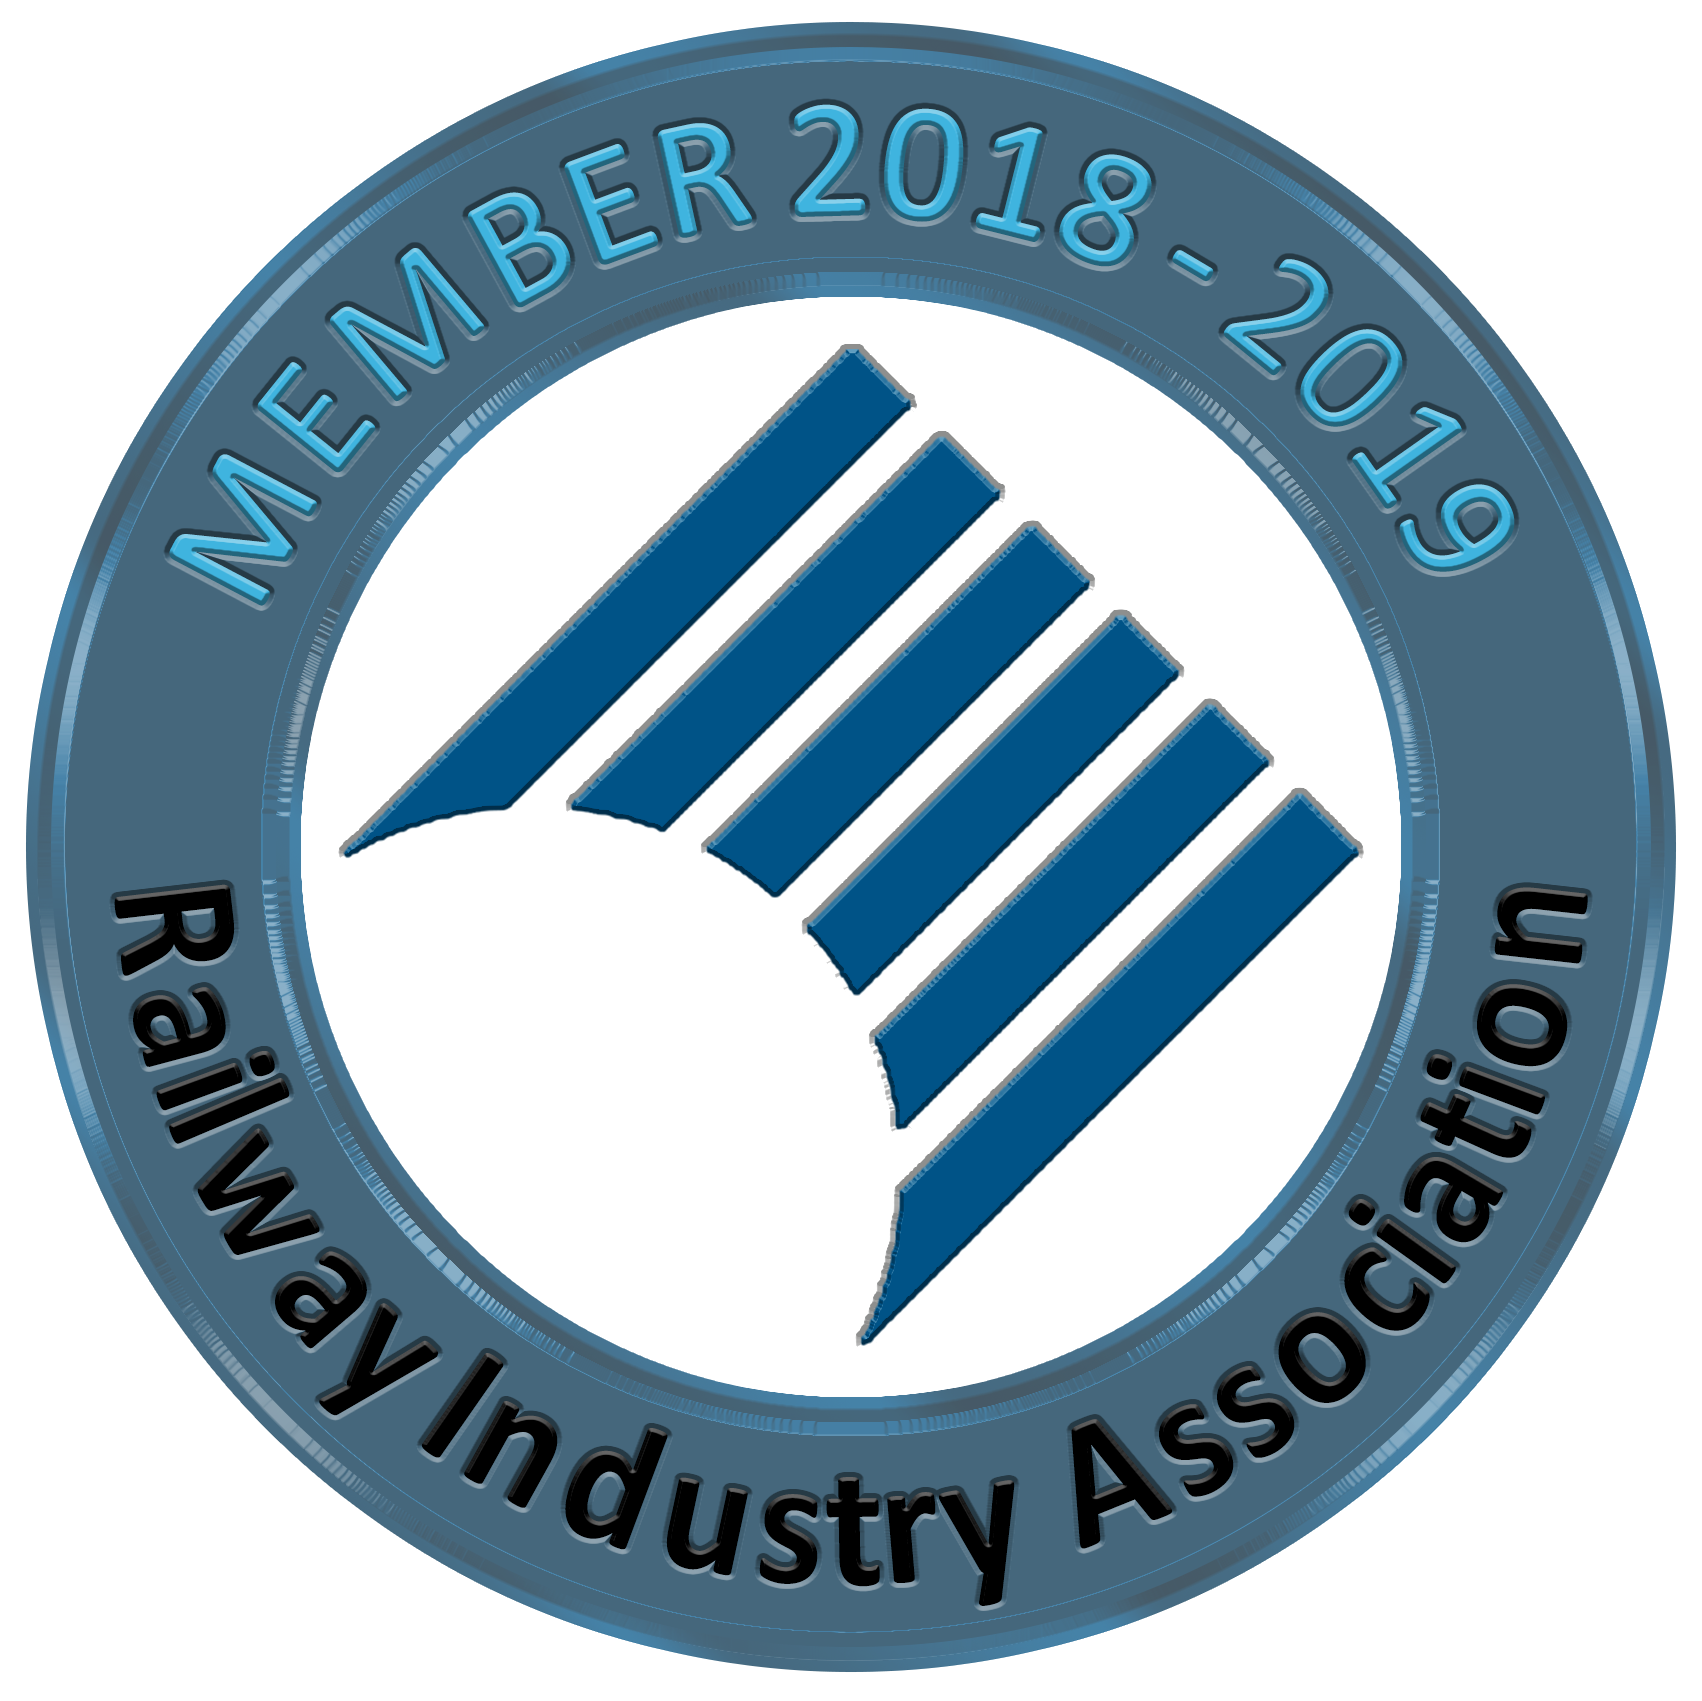 Movement Strategies are members of the Railway Industry Association